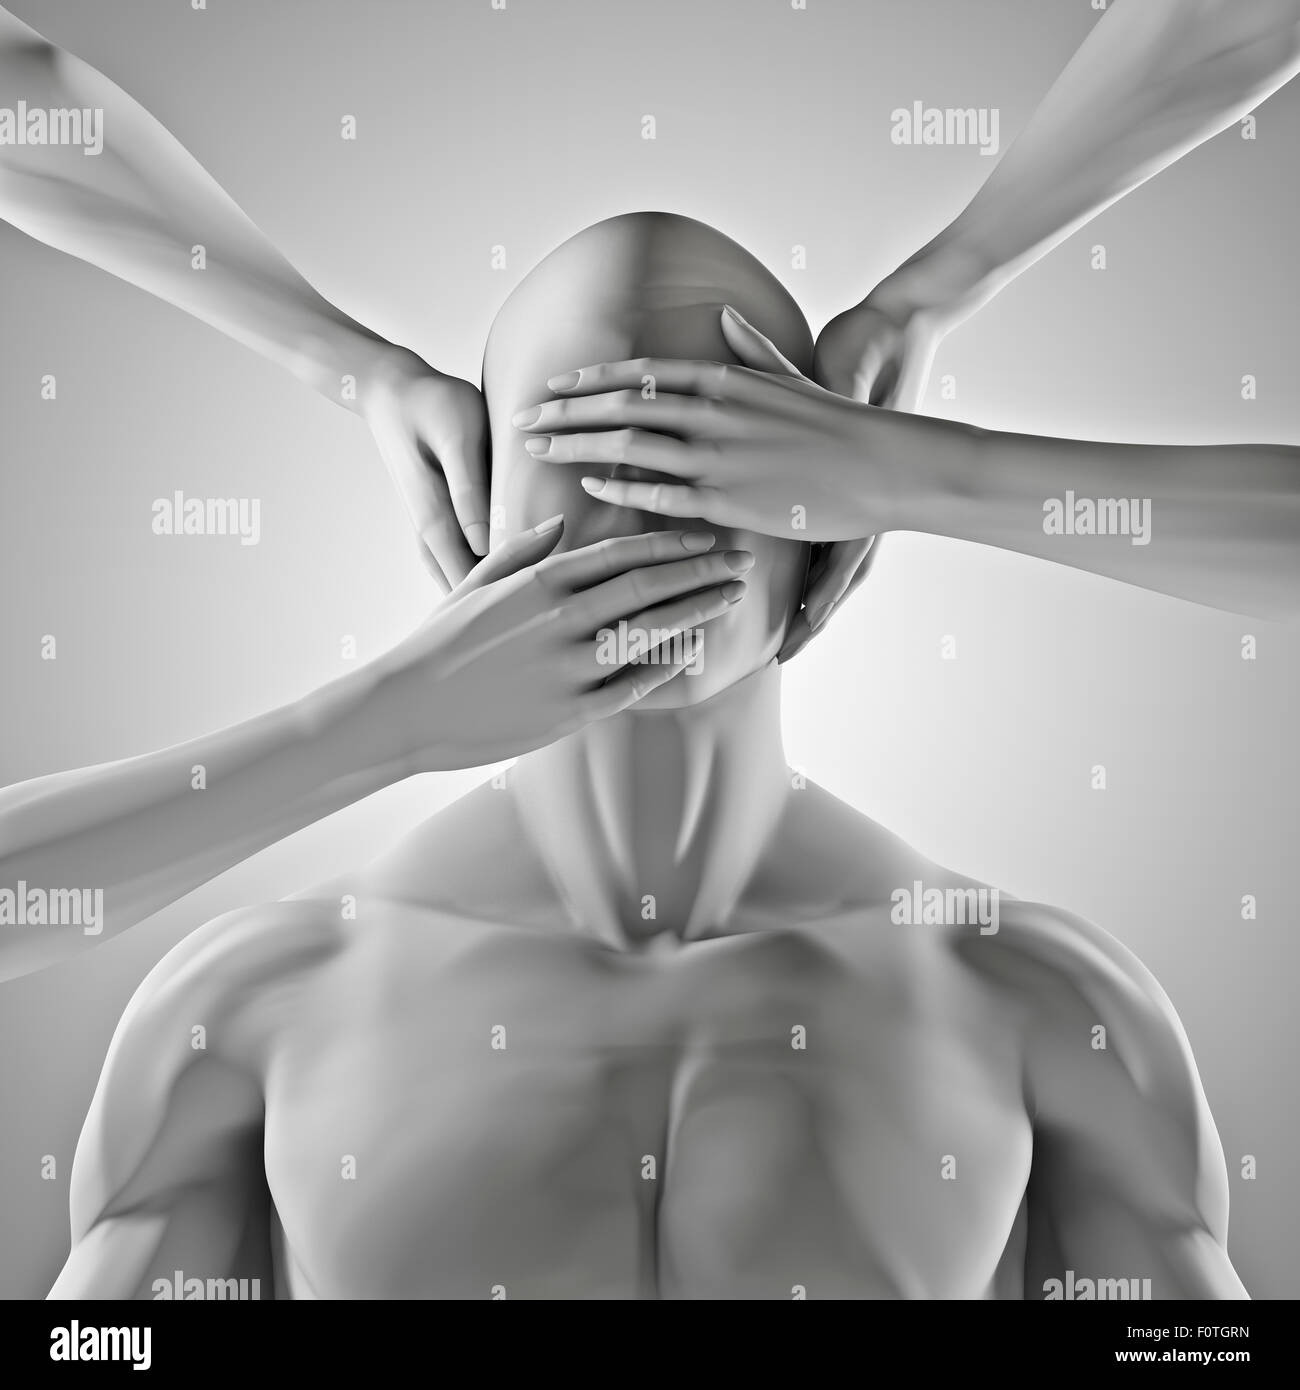 Speak no evil, 3D render of male figure with hands covering eyes, ears and mouth - Stock Image